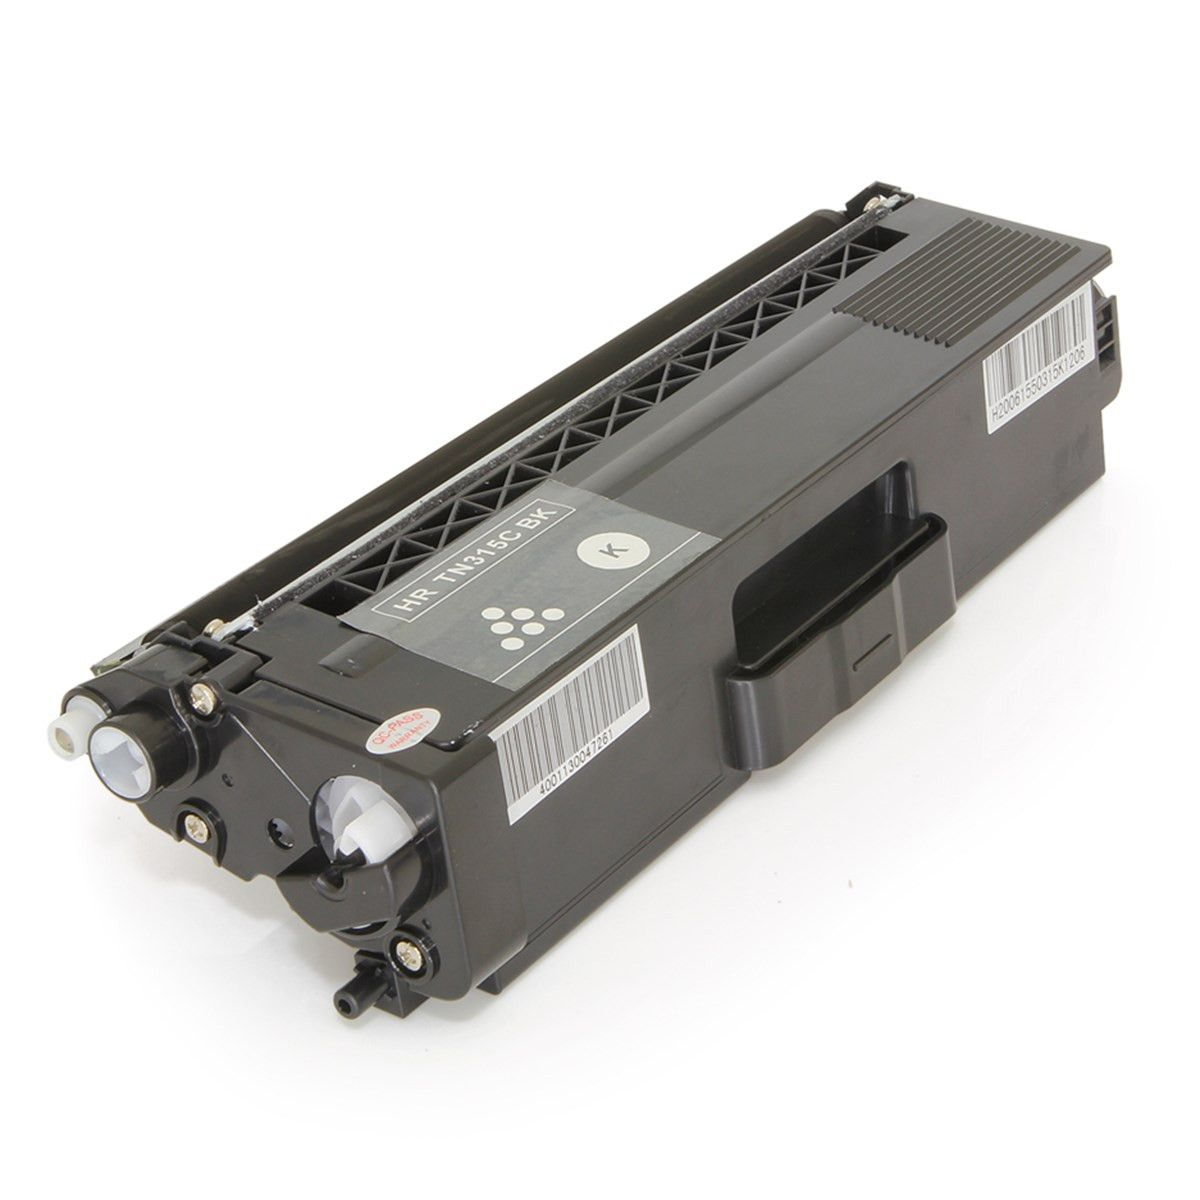 TONER BROTHER TN 315 BK 6K - (HL4140/4570/9970) - EVOLUT